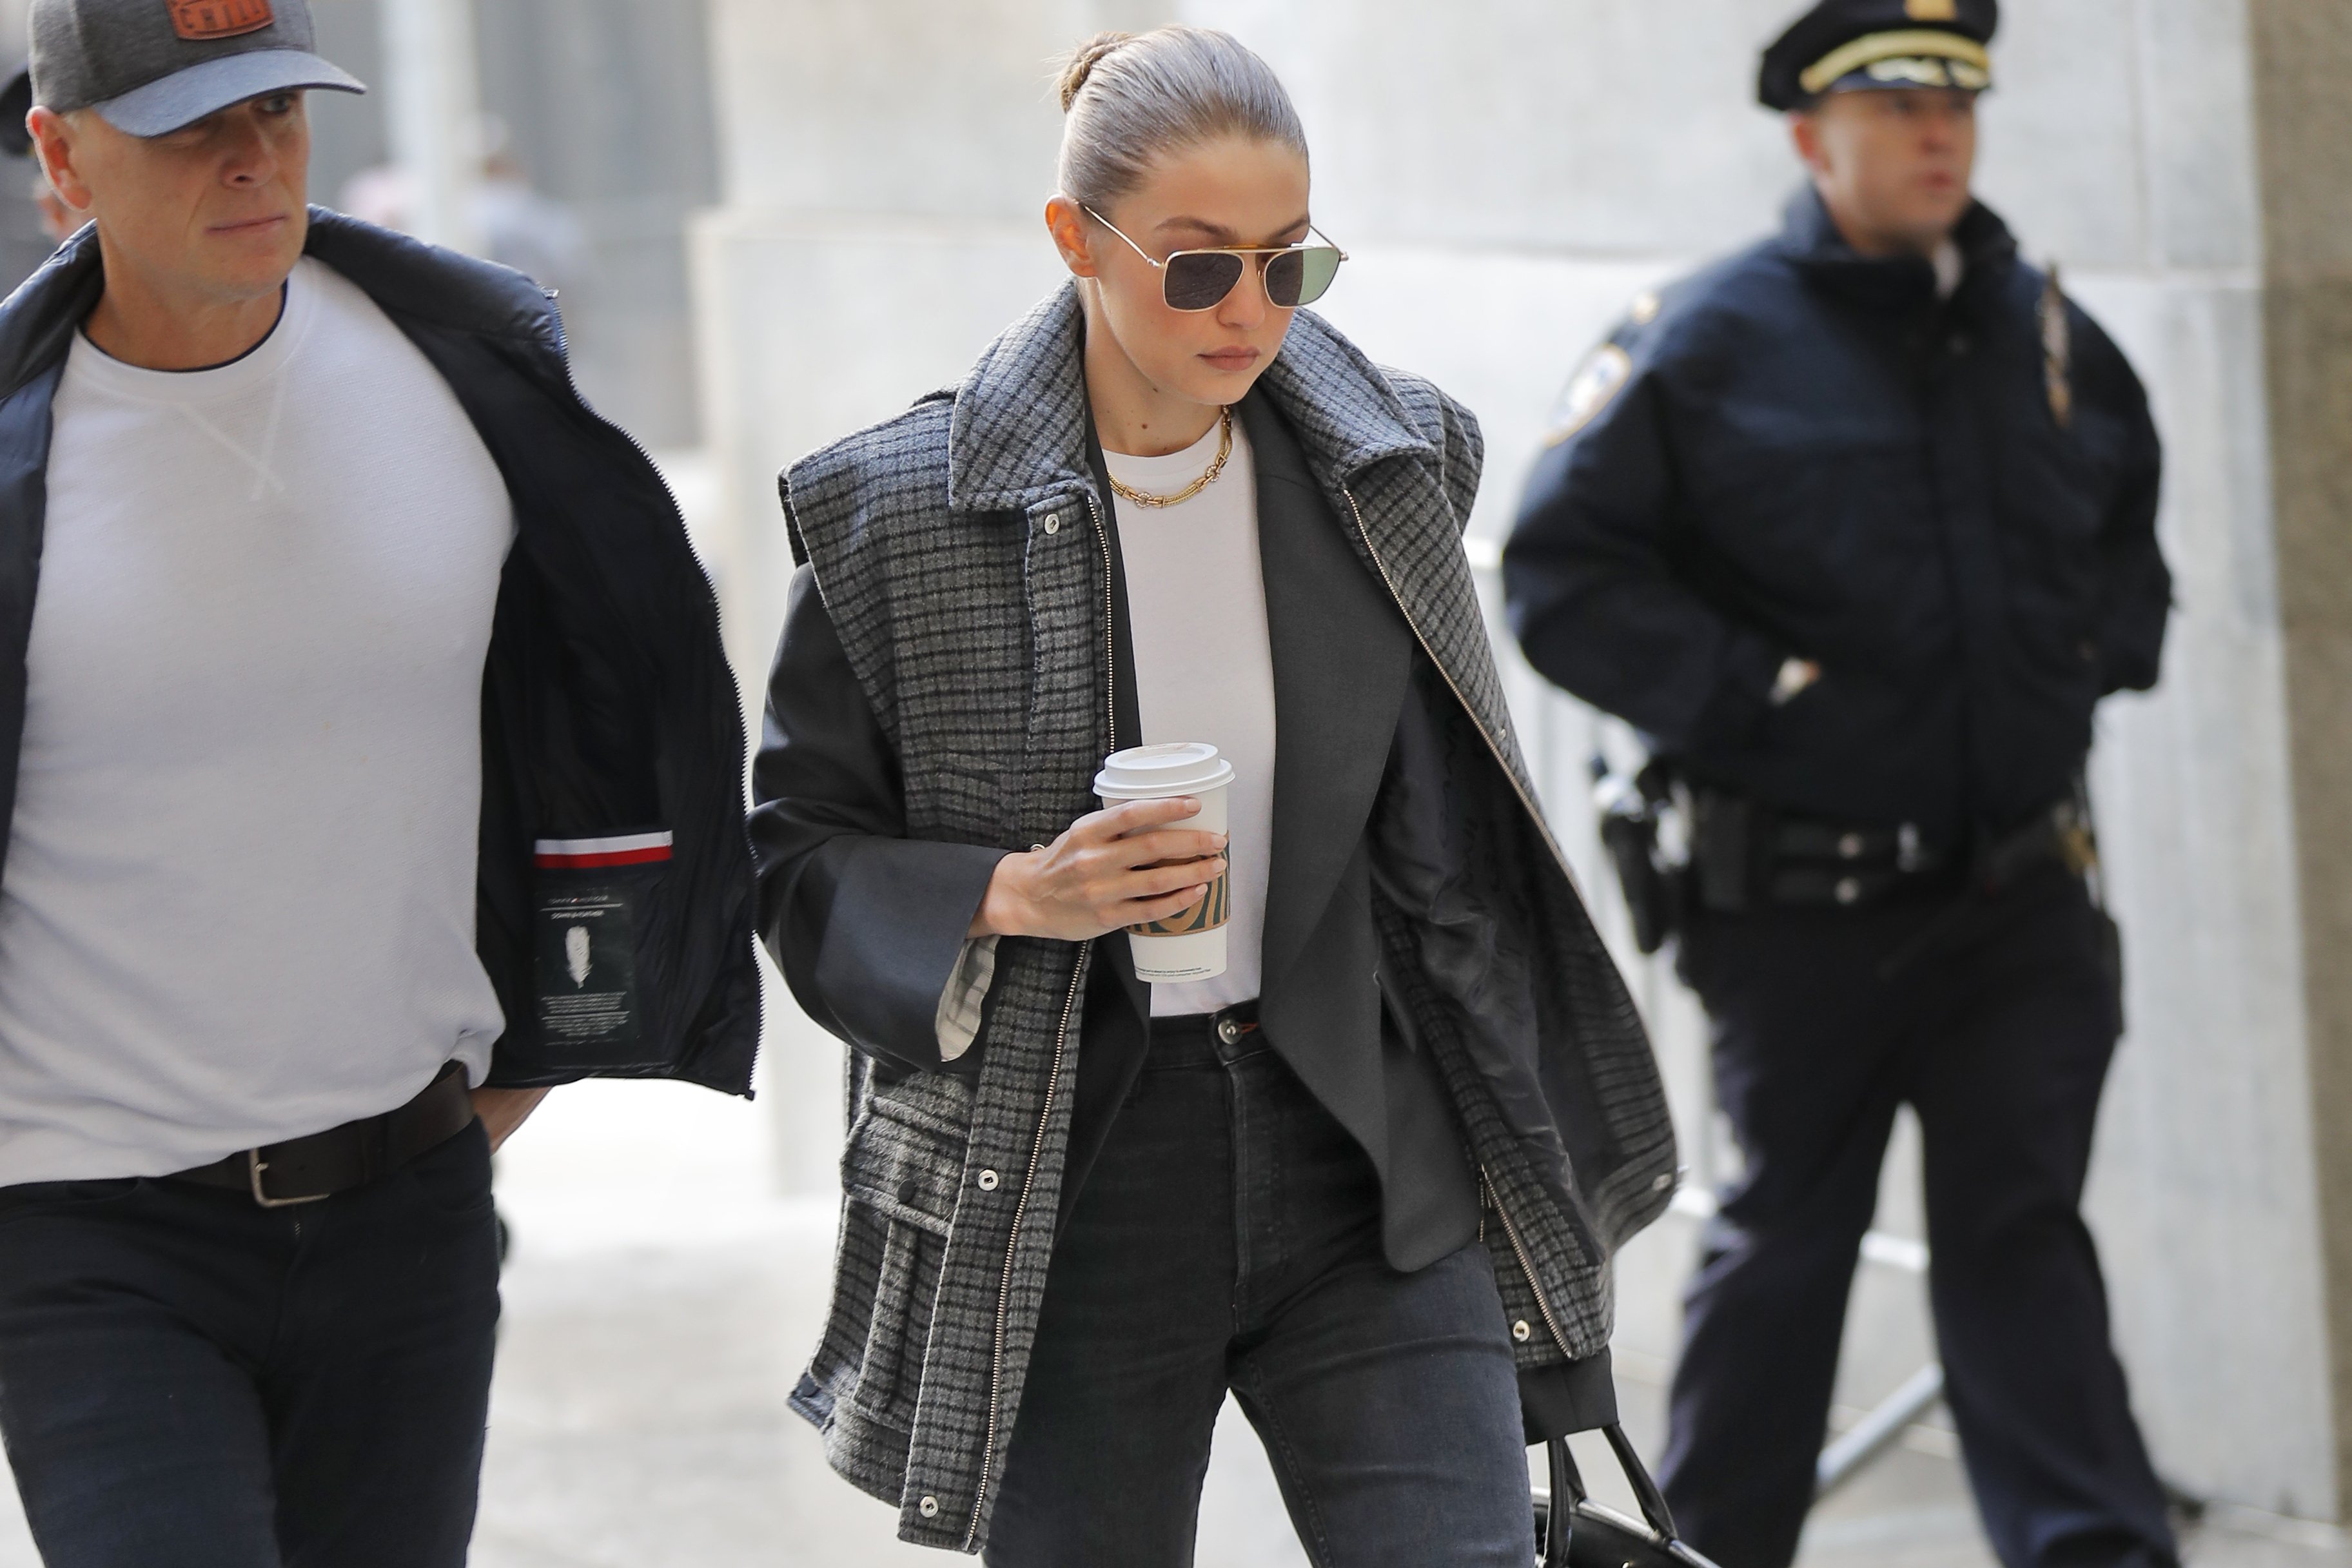 Supermodel Gigi Hadid arrives at a Manhattan courthouse for Harvey Weinstein's jury selection in his trial on rape and sexual assault charges in New York, Thursday, Jan. 16, 2020.